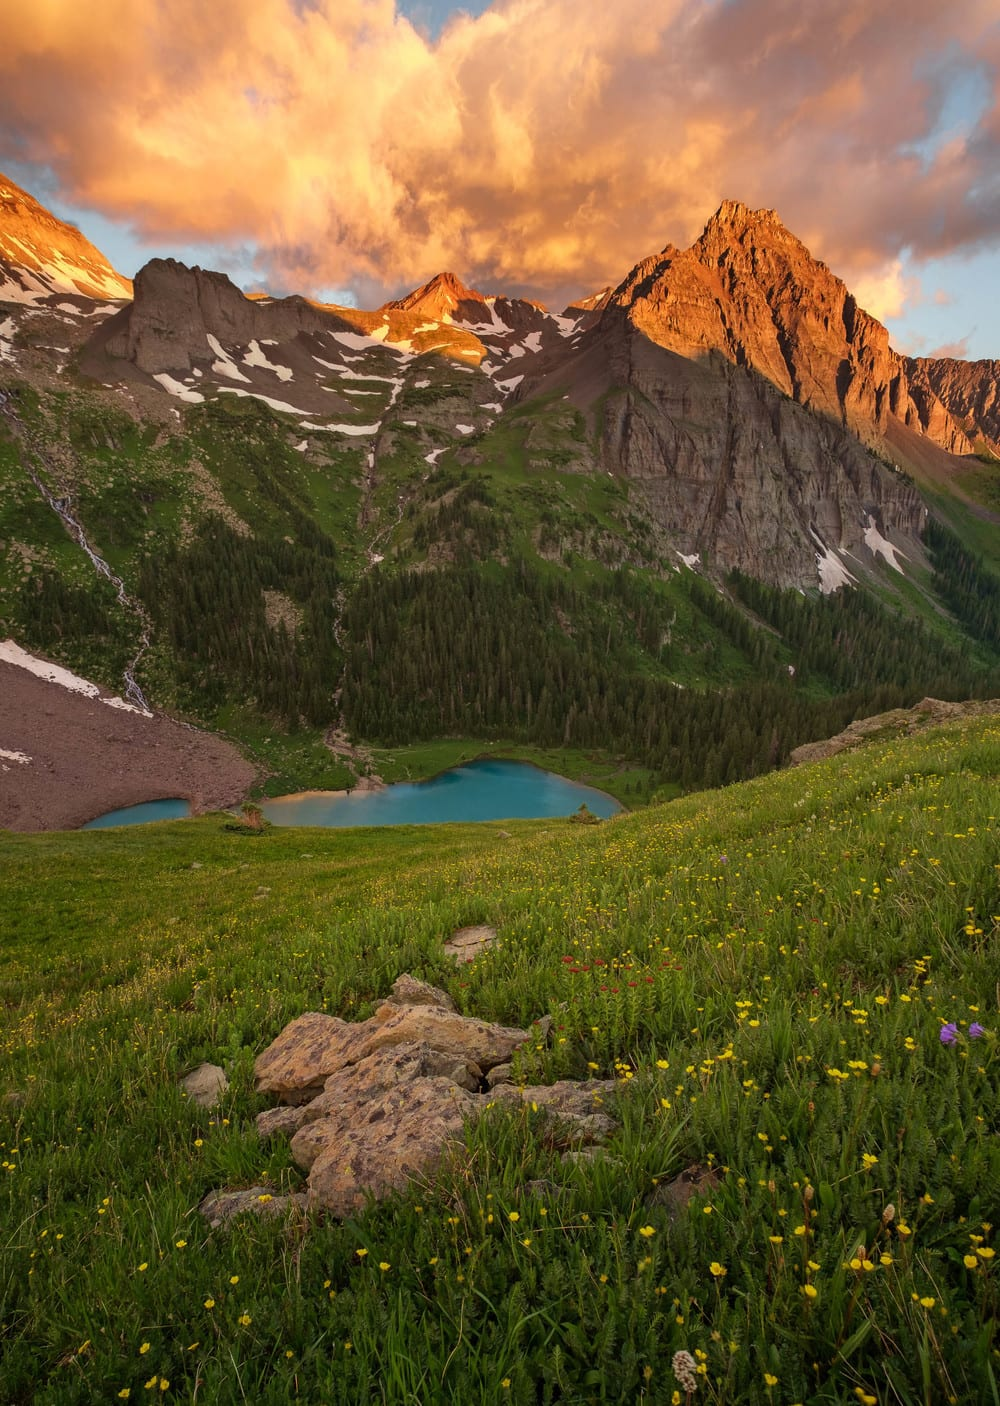 Mount Sneffels Wilderness Blue Lakes Sunrise